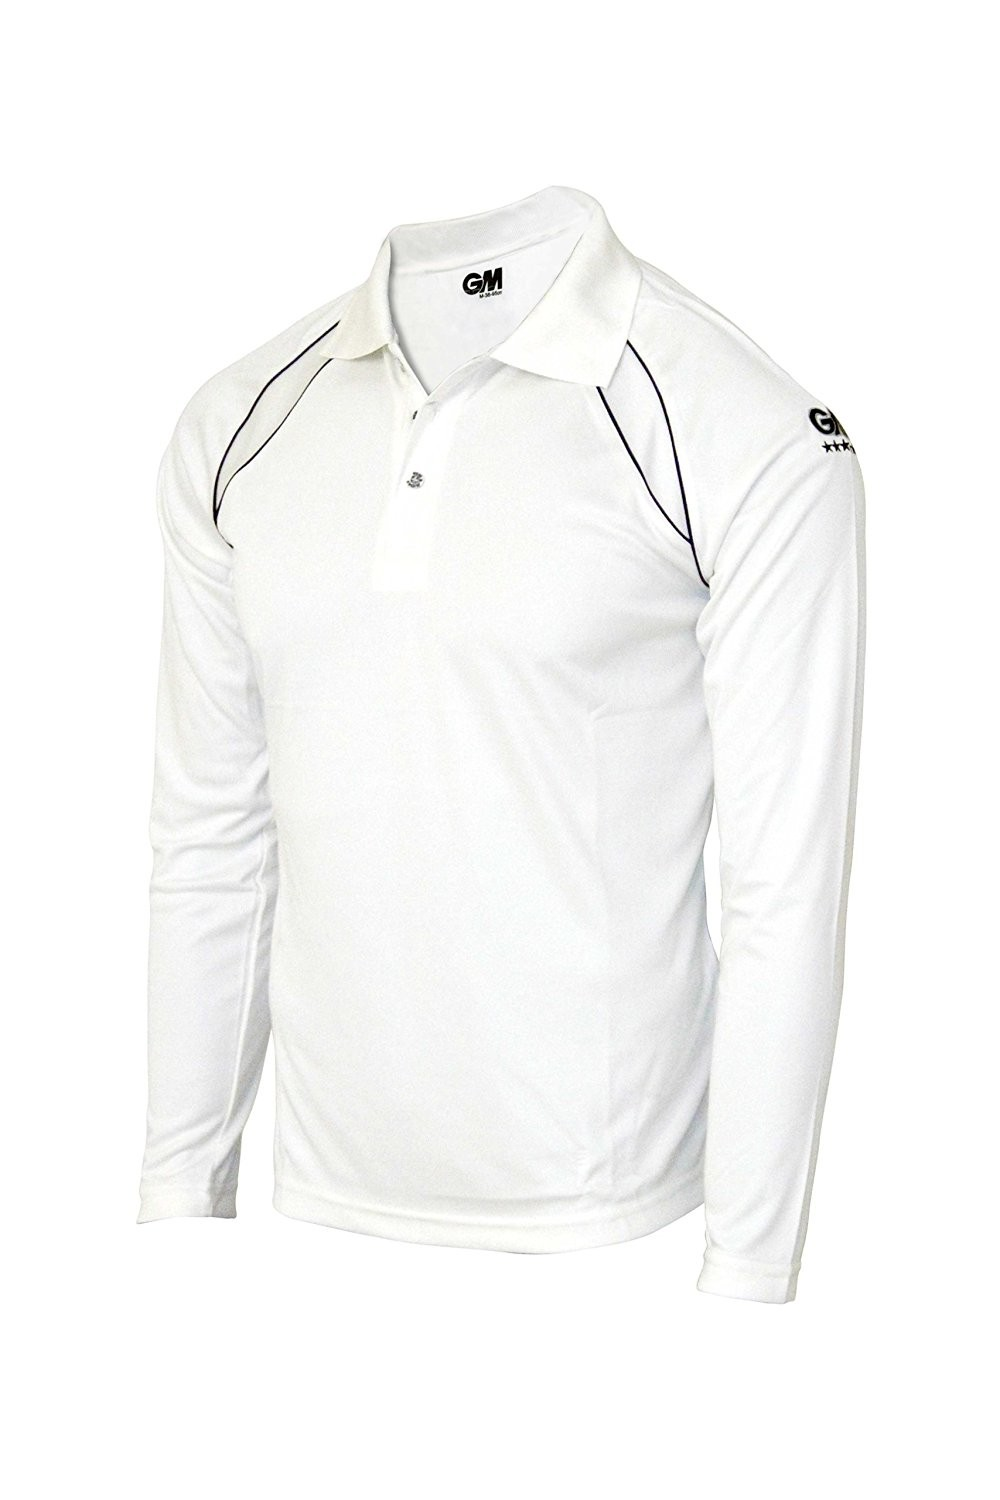 GM 7205 Full Sleeve Cricket T- Shirt